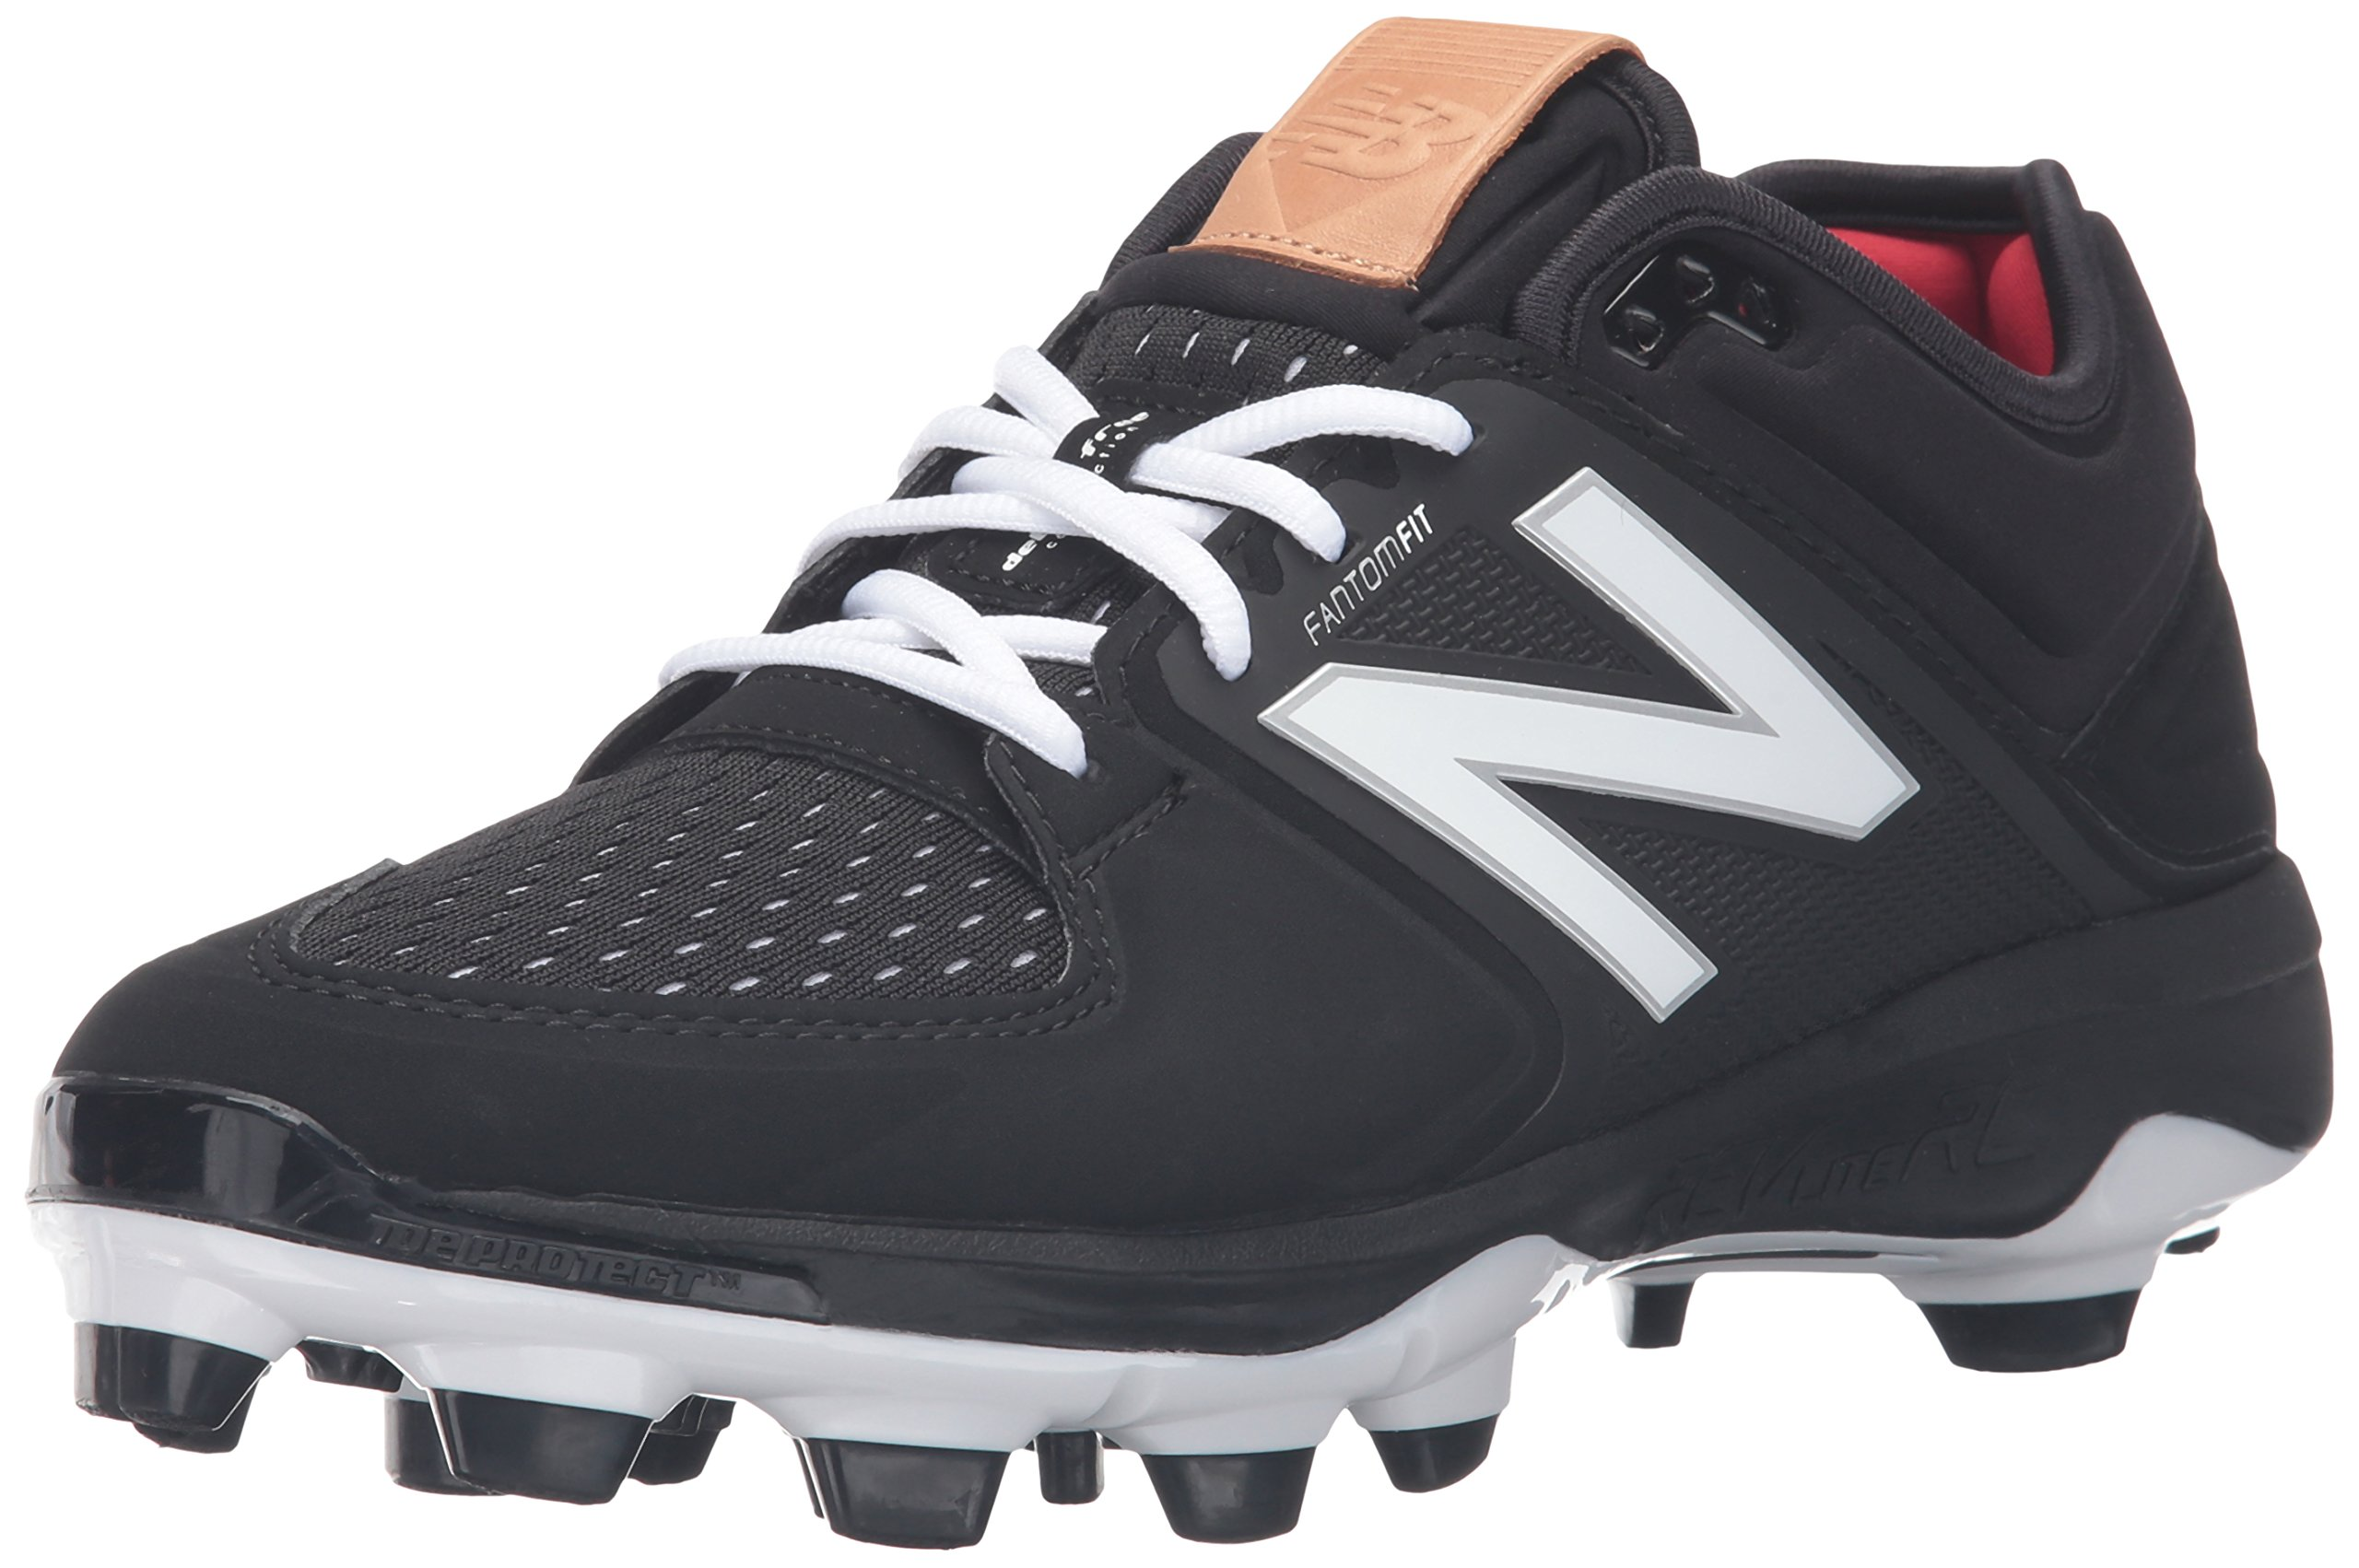 New Balance Men's 3000v3 Baseball TPU Cleat, Black/Black, 11.5 D US by New Balance